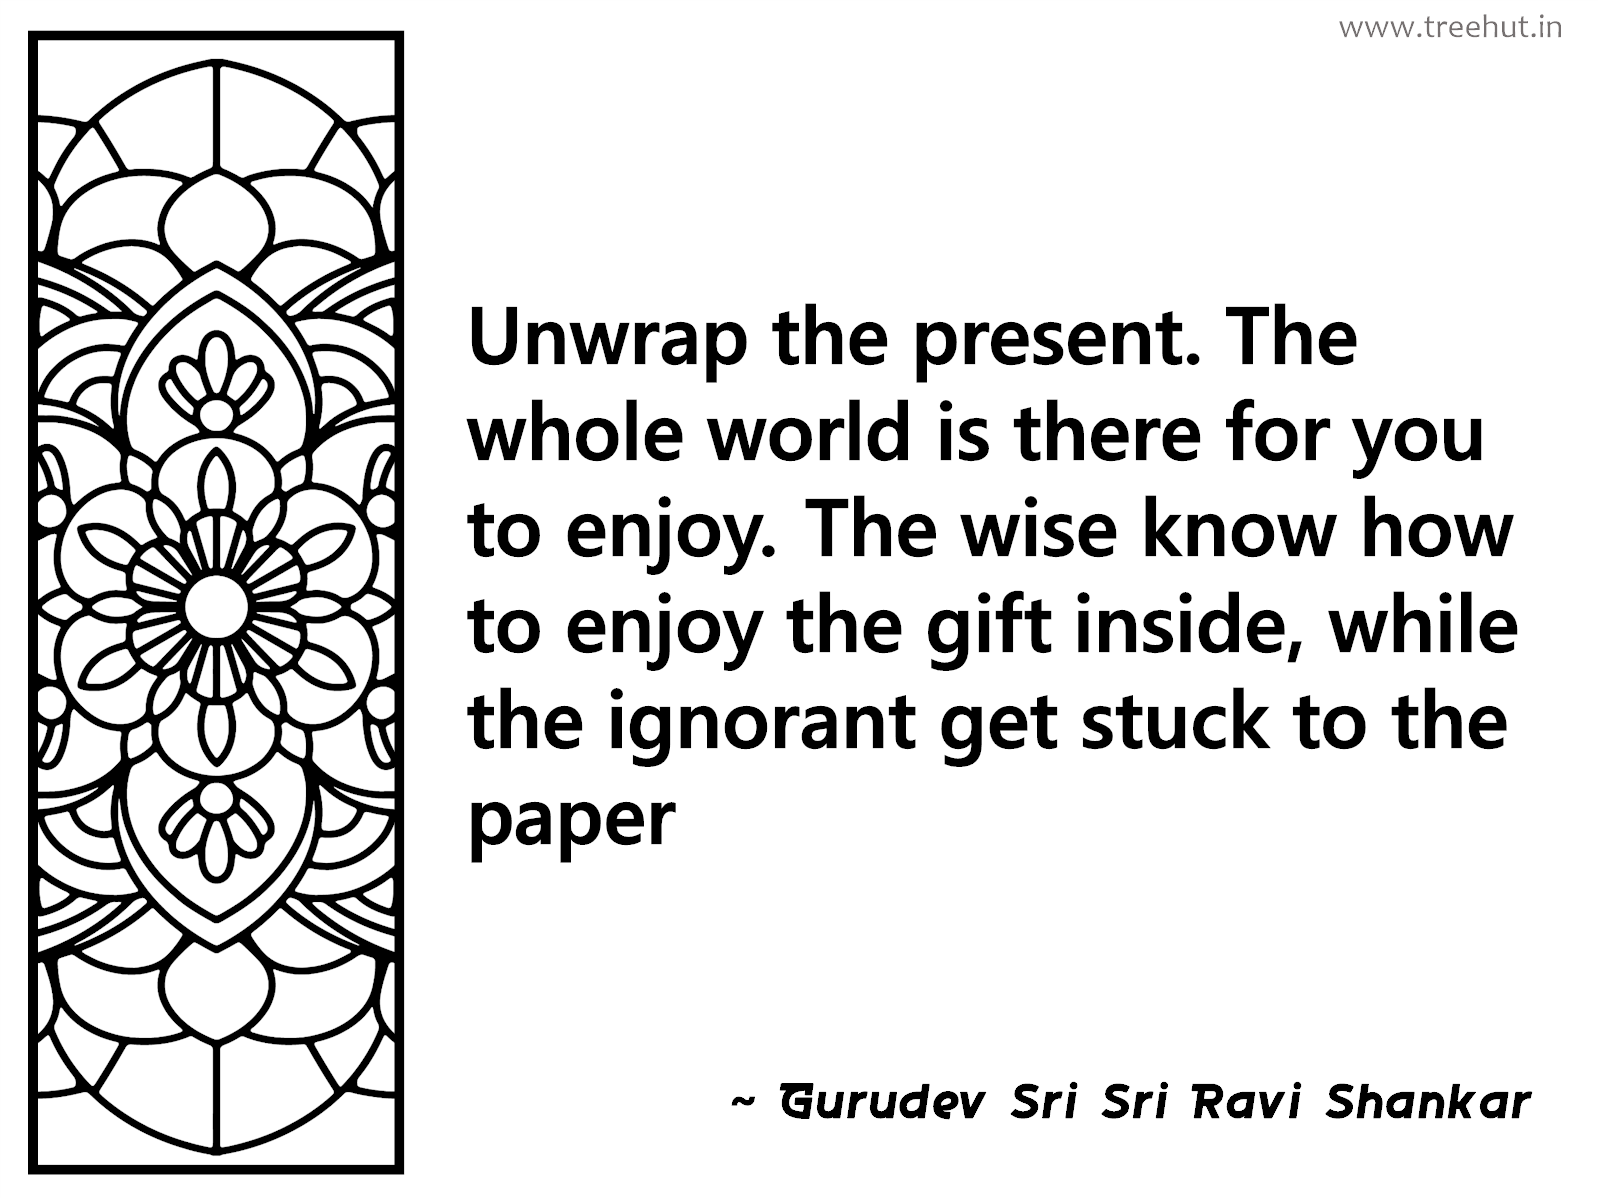 Unwrap the present. The whole world is there for you to enjoy. The wise know how to enjoy the gift inside, while the ignorant get stuck to the paper Inspirational Quote by Gurudev Sri Sri Ravi Shankar, coloring pages